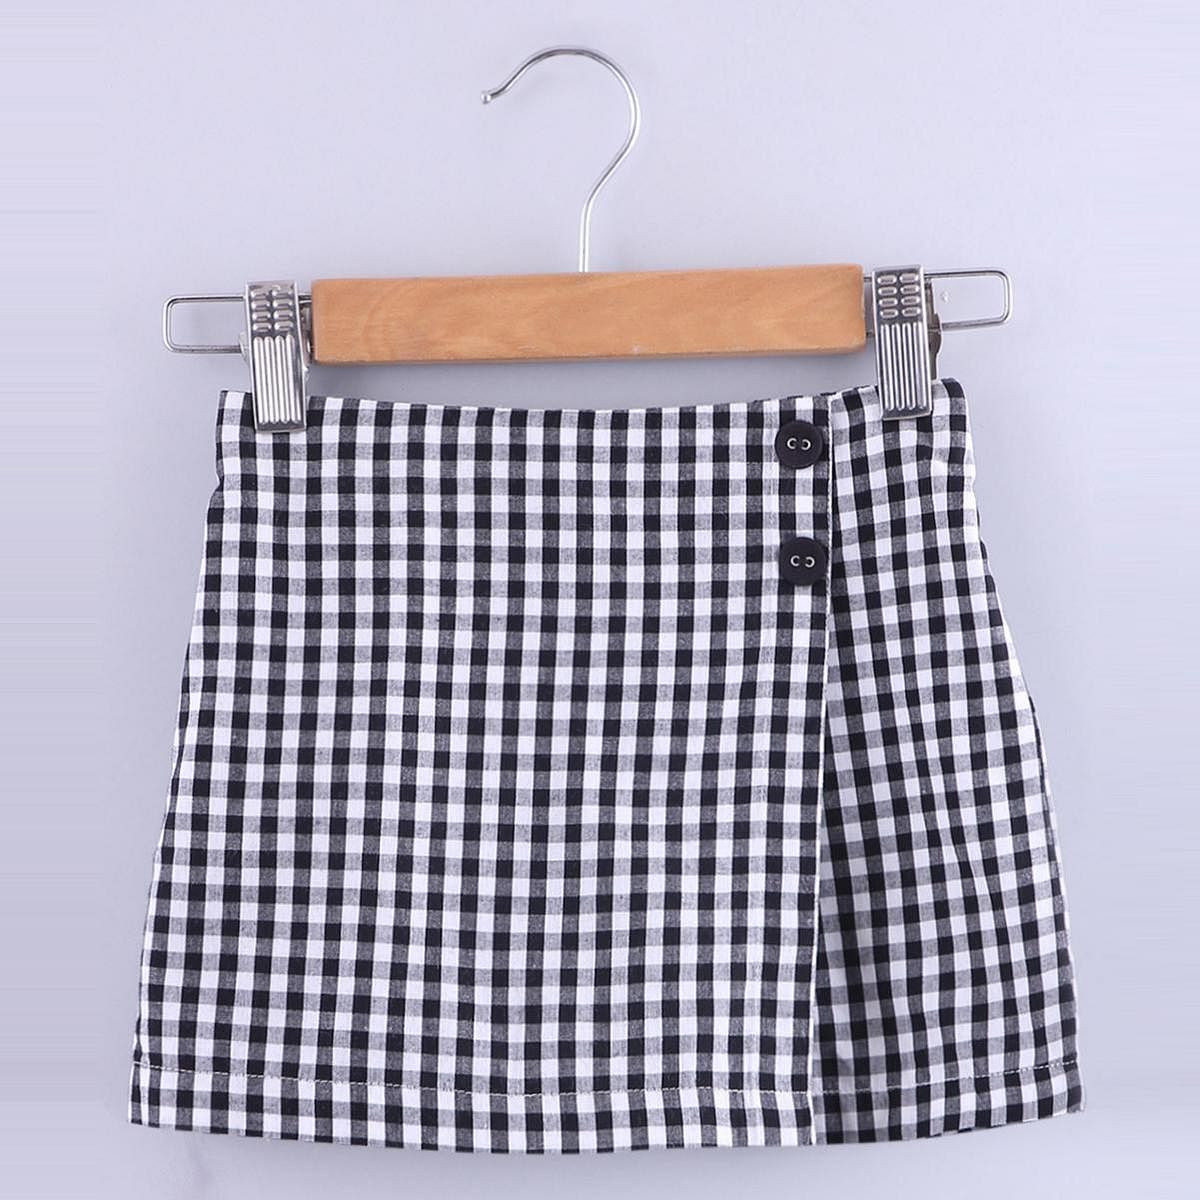 Beebay - Black Colored Gingham Check Cotton Skirt For Girls